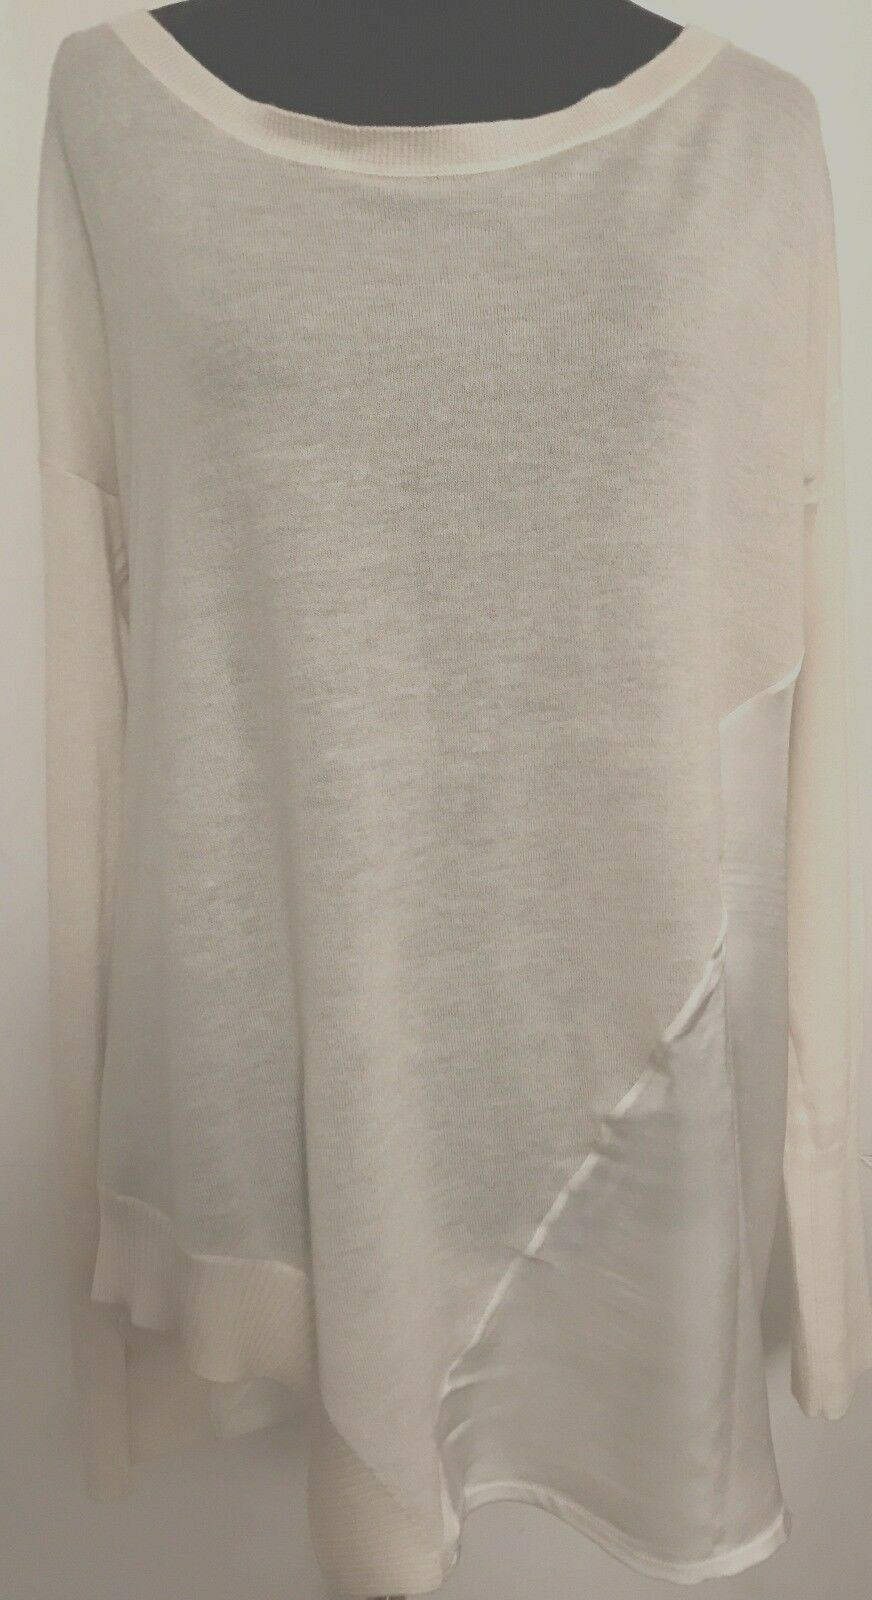 Christopher Fischer Women's Ivory Cashmere and Silk Sweater Size M NWOT